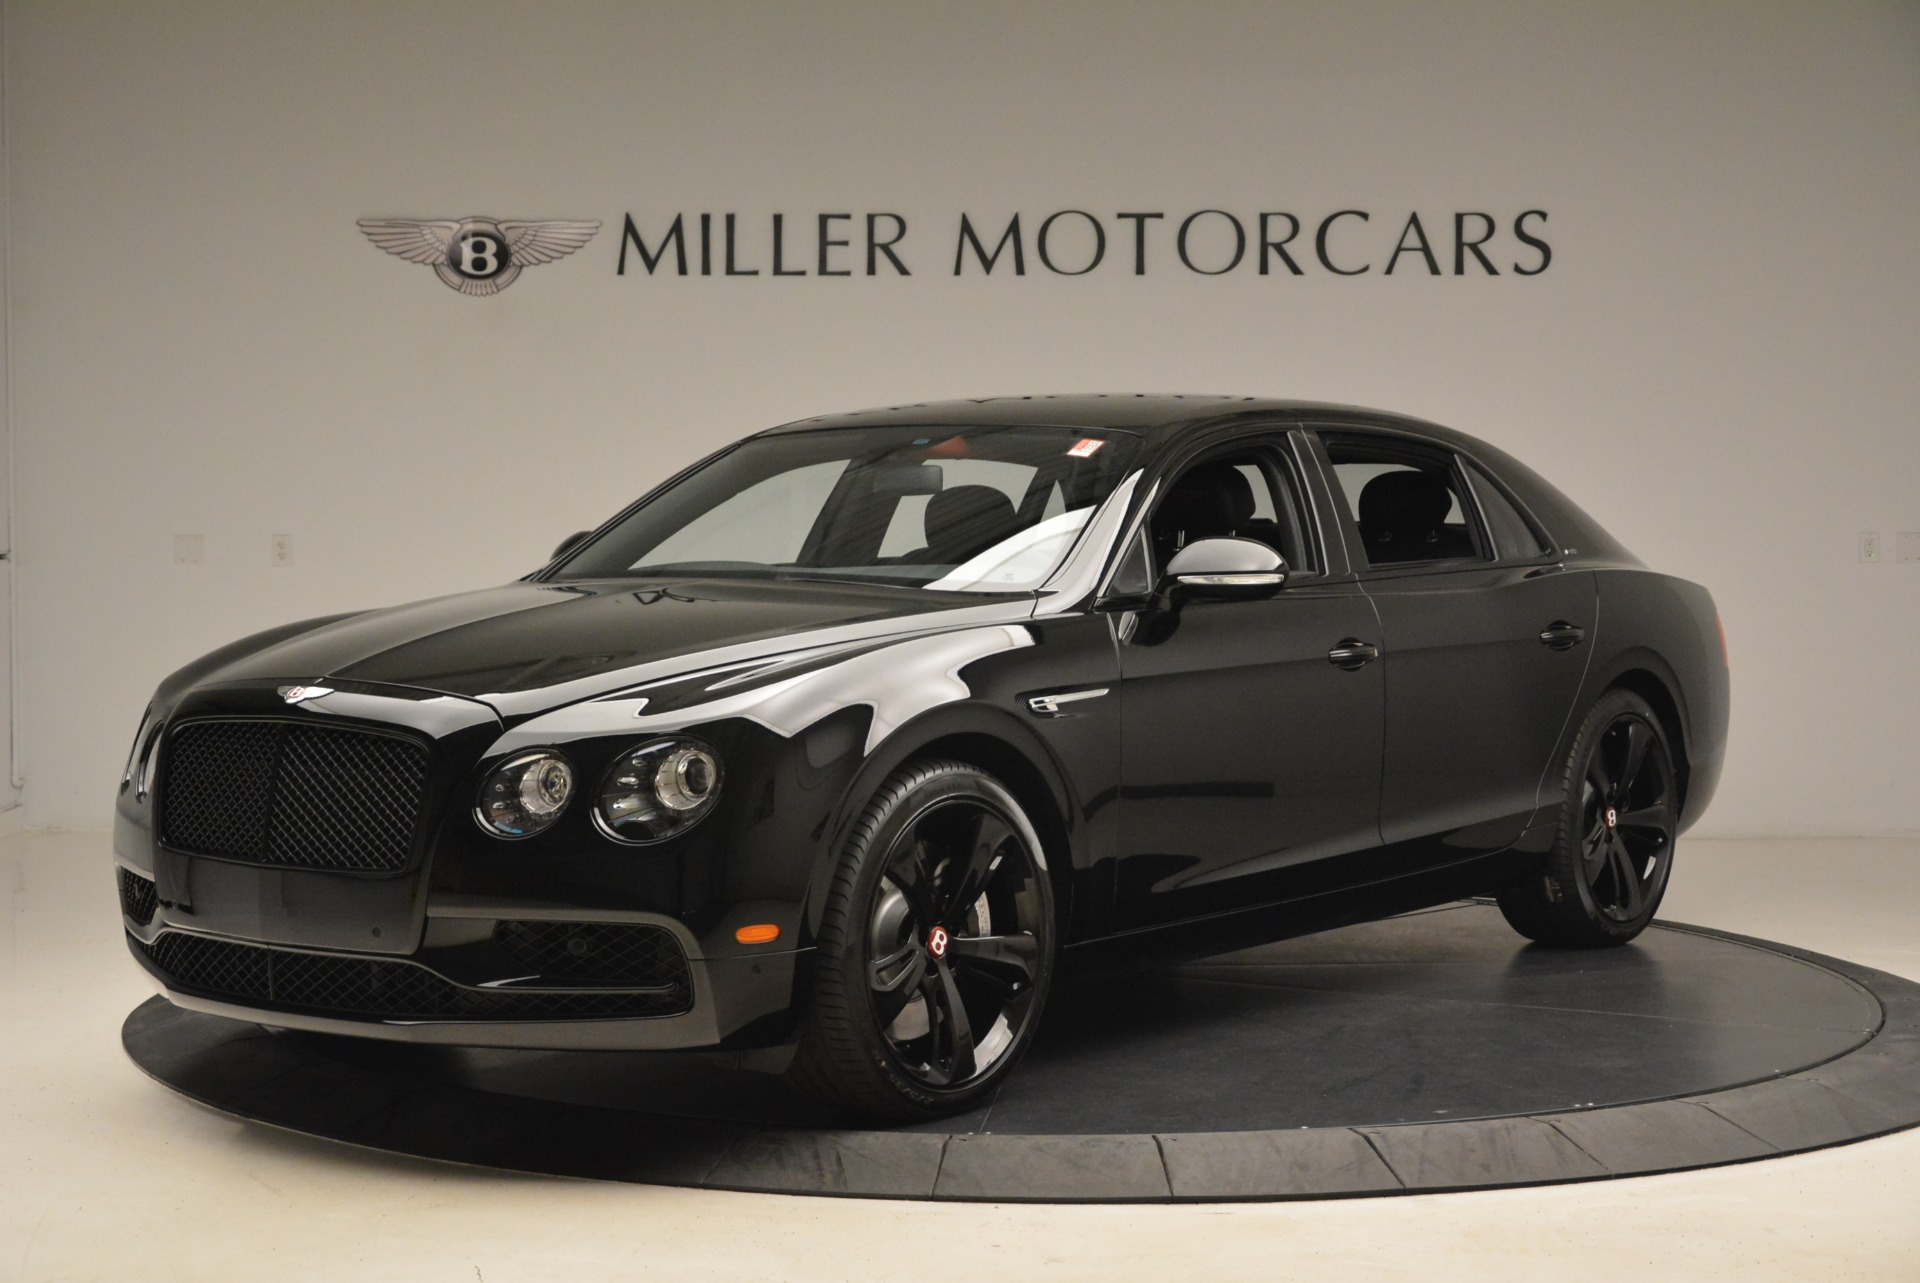 New 2018 Bentley Flying Spur V8 S Black Edition For Sale In Westport, CT 2073_p2